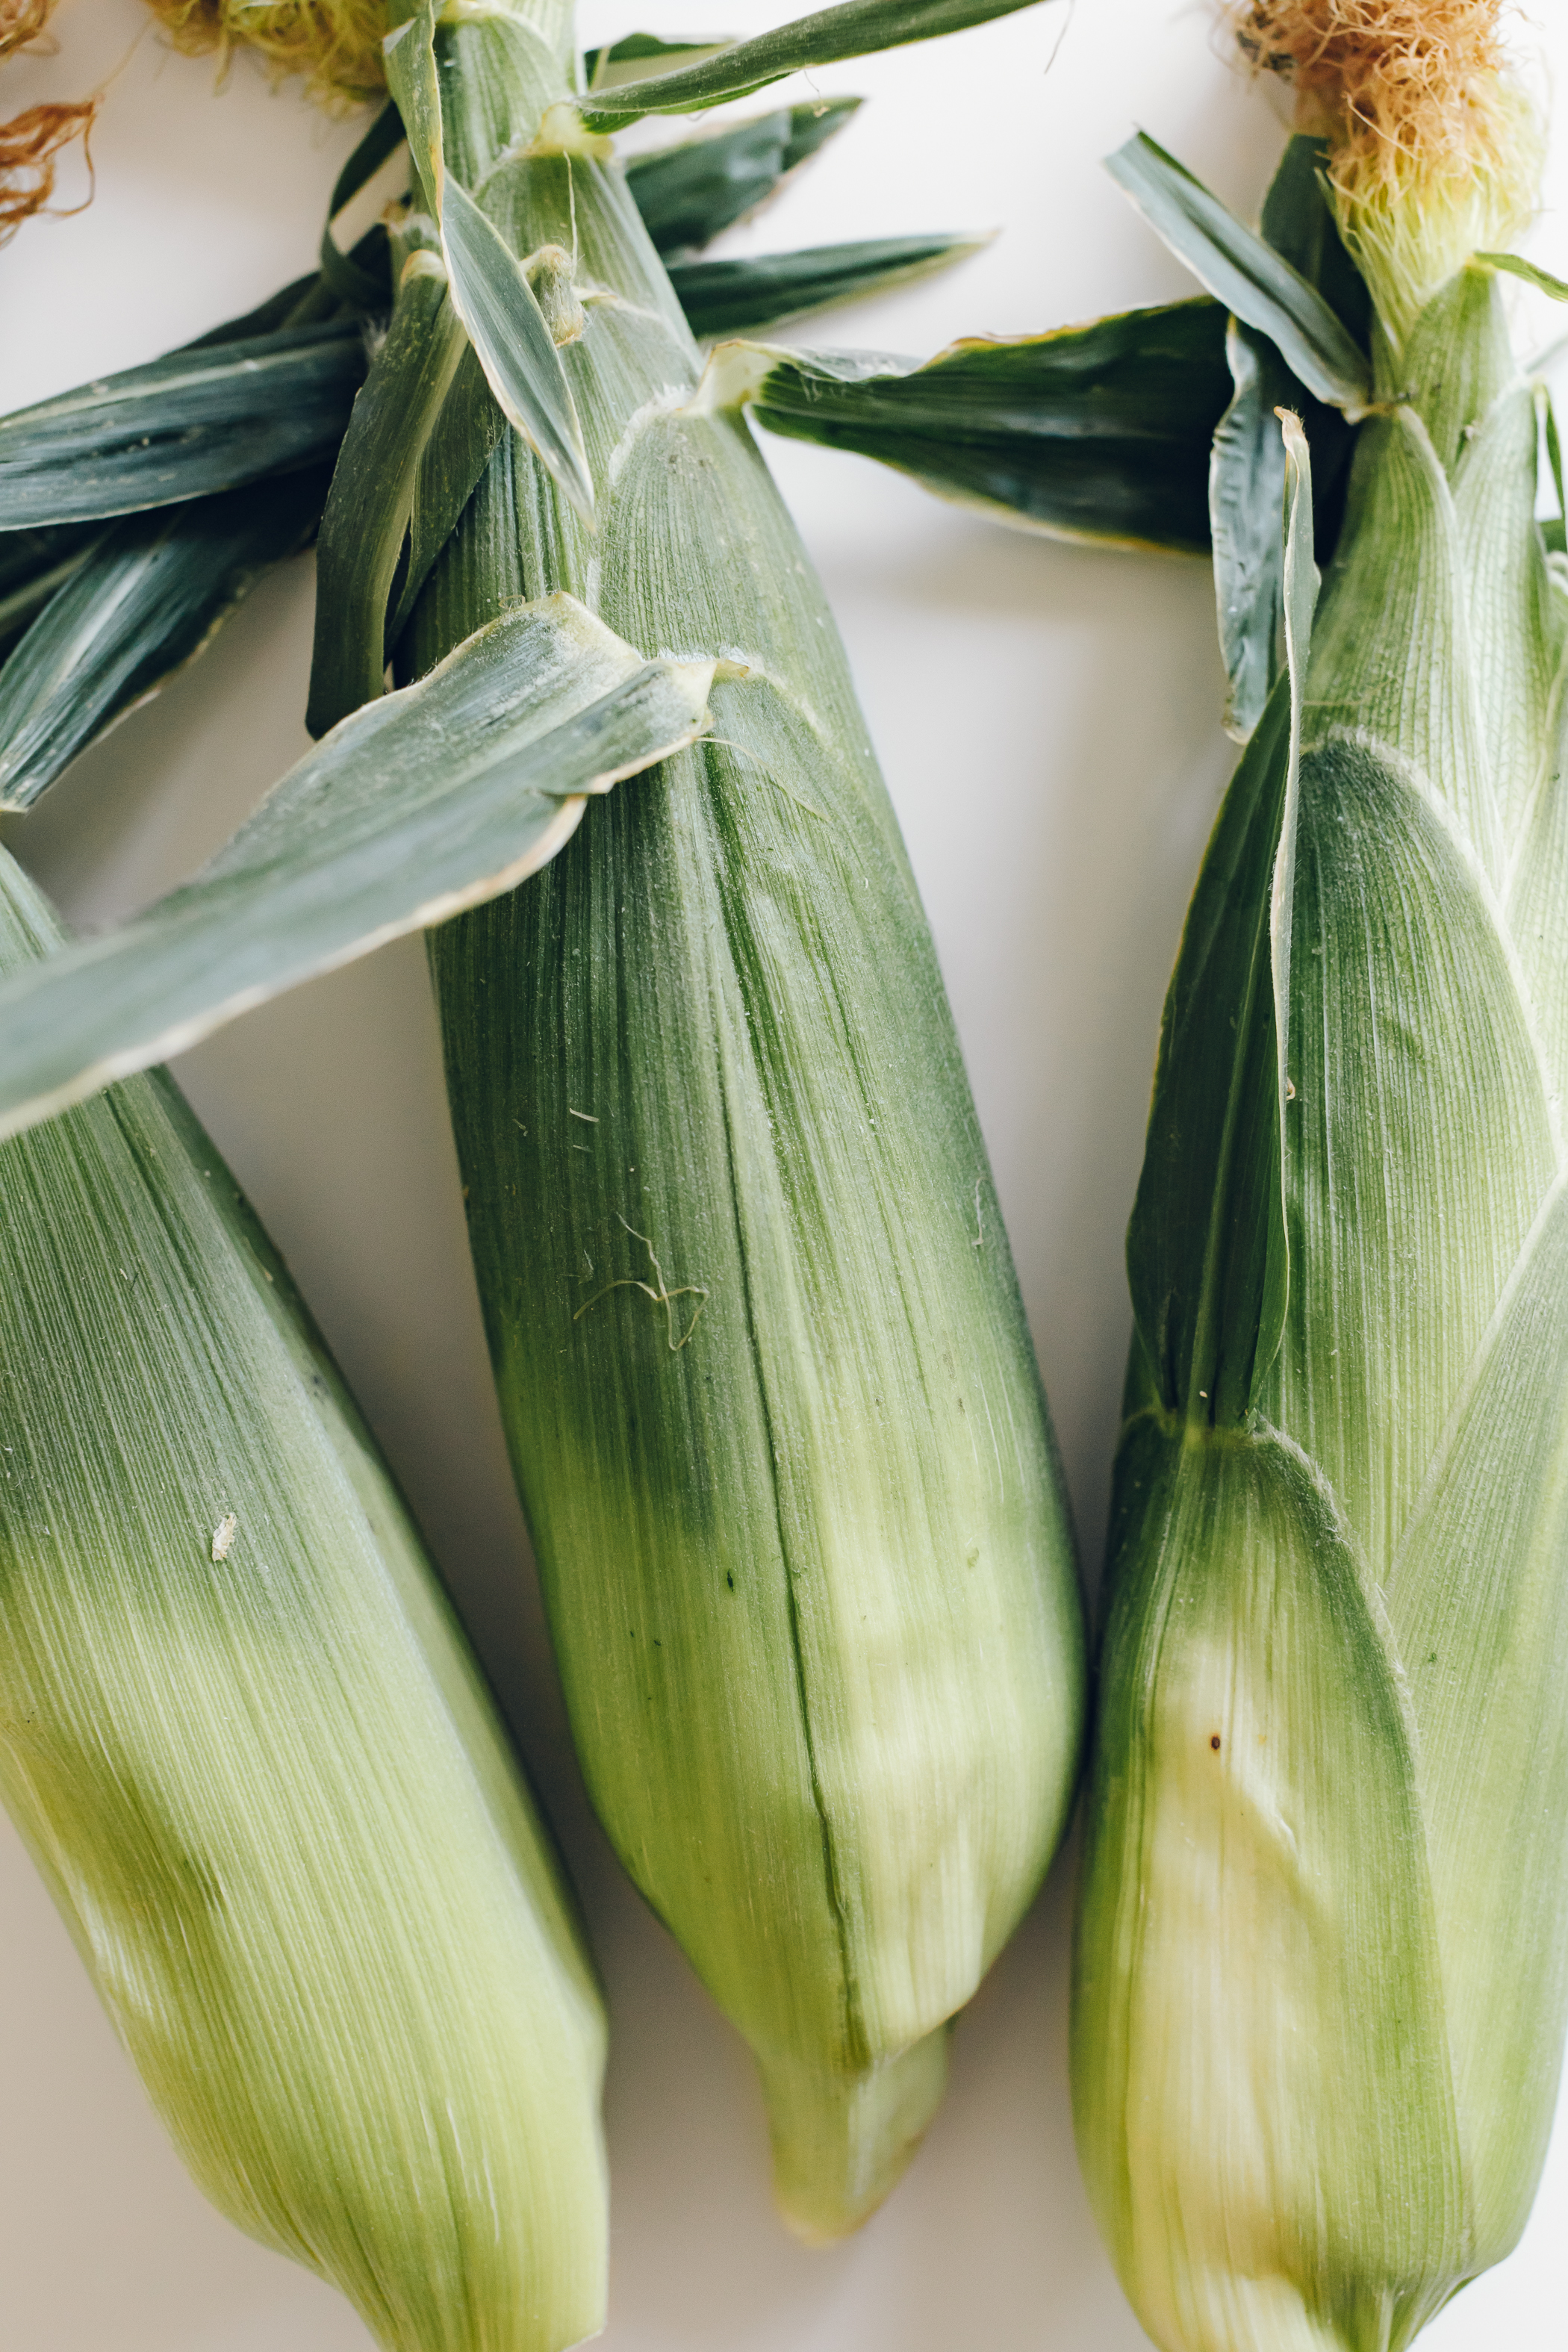 How to select: - Look for corn husks that are bright green and look fresh. Avoid husks that appear dry, or that are peeling away from the cob.Give the cob a squeeze, and pick ones with the least amount of air gap between the husks and the kernels. It is preferable for them to be tightly packed.You can peel back a piece of the husk to check to make sure the kernels are plump and tightly packed together. But once you find a stand/store where you can trust their corn, try not to do this and leave them tightly sealed until ready to use.